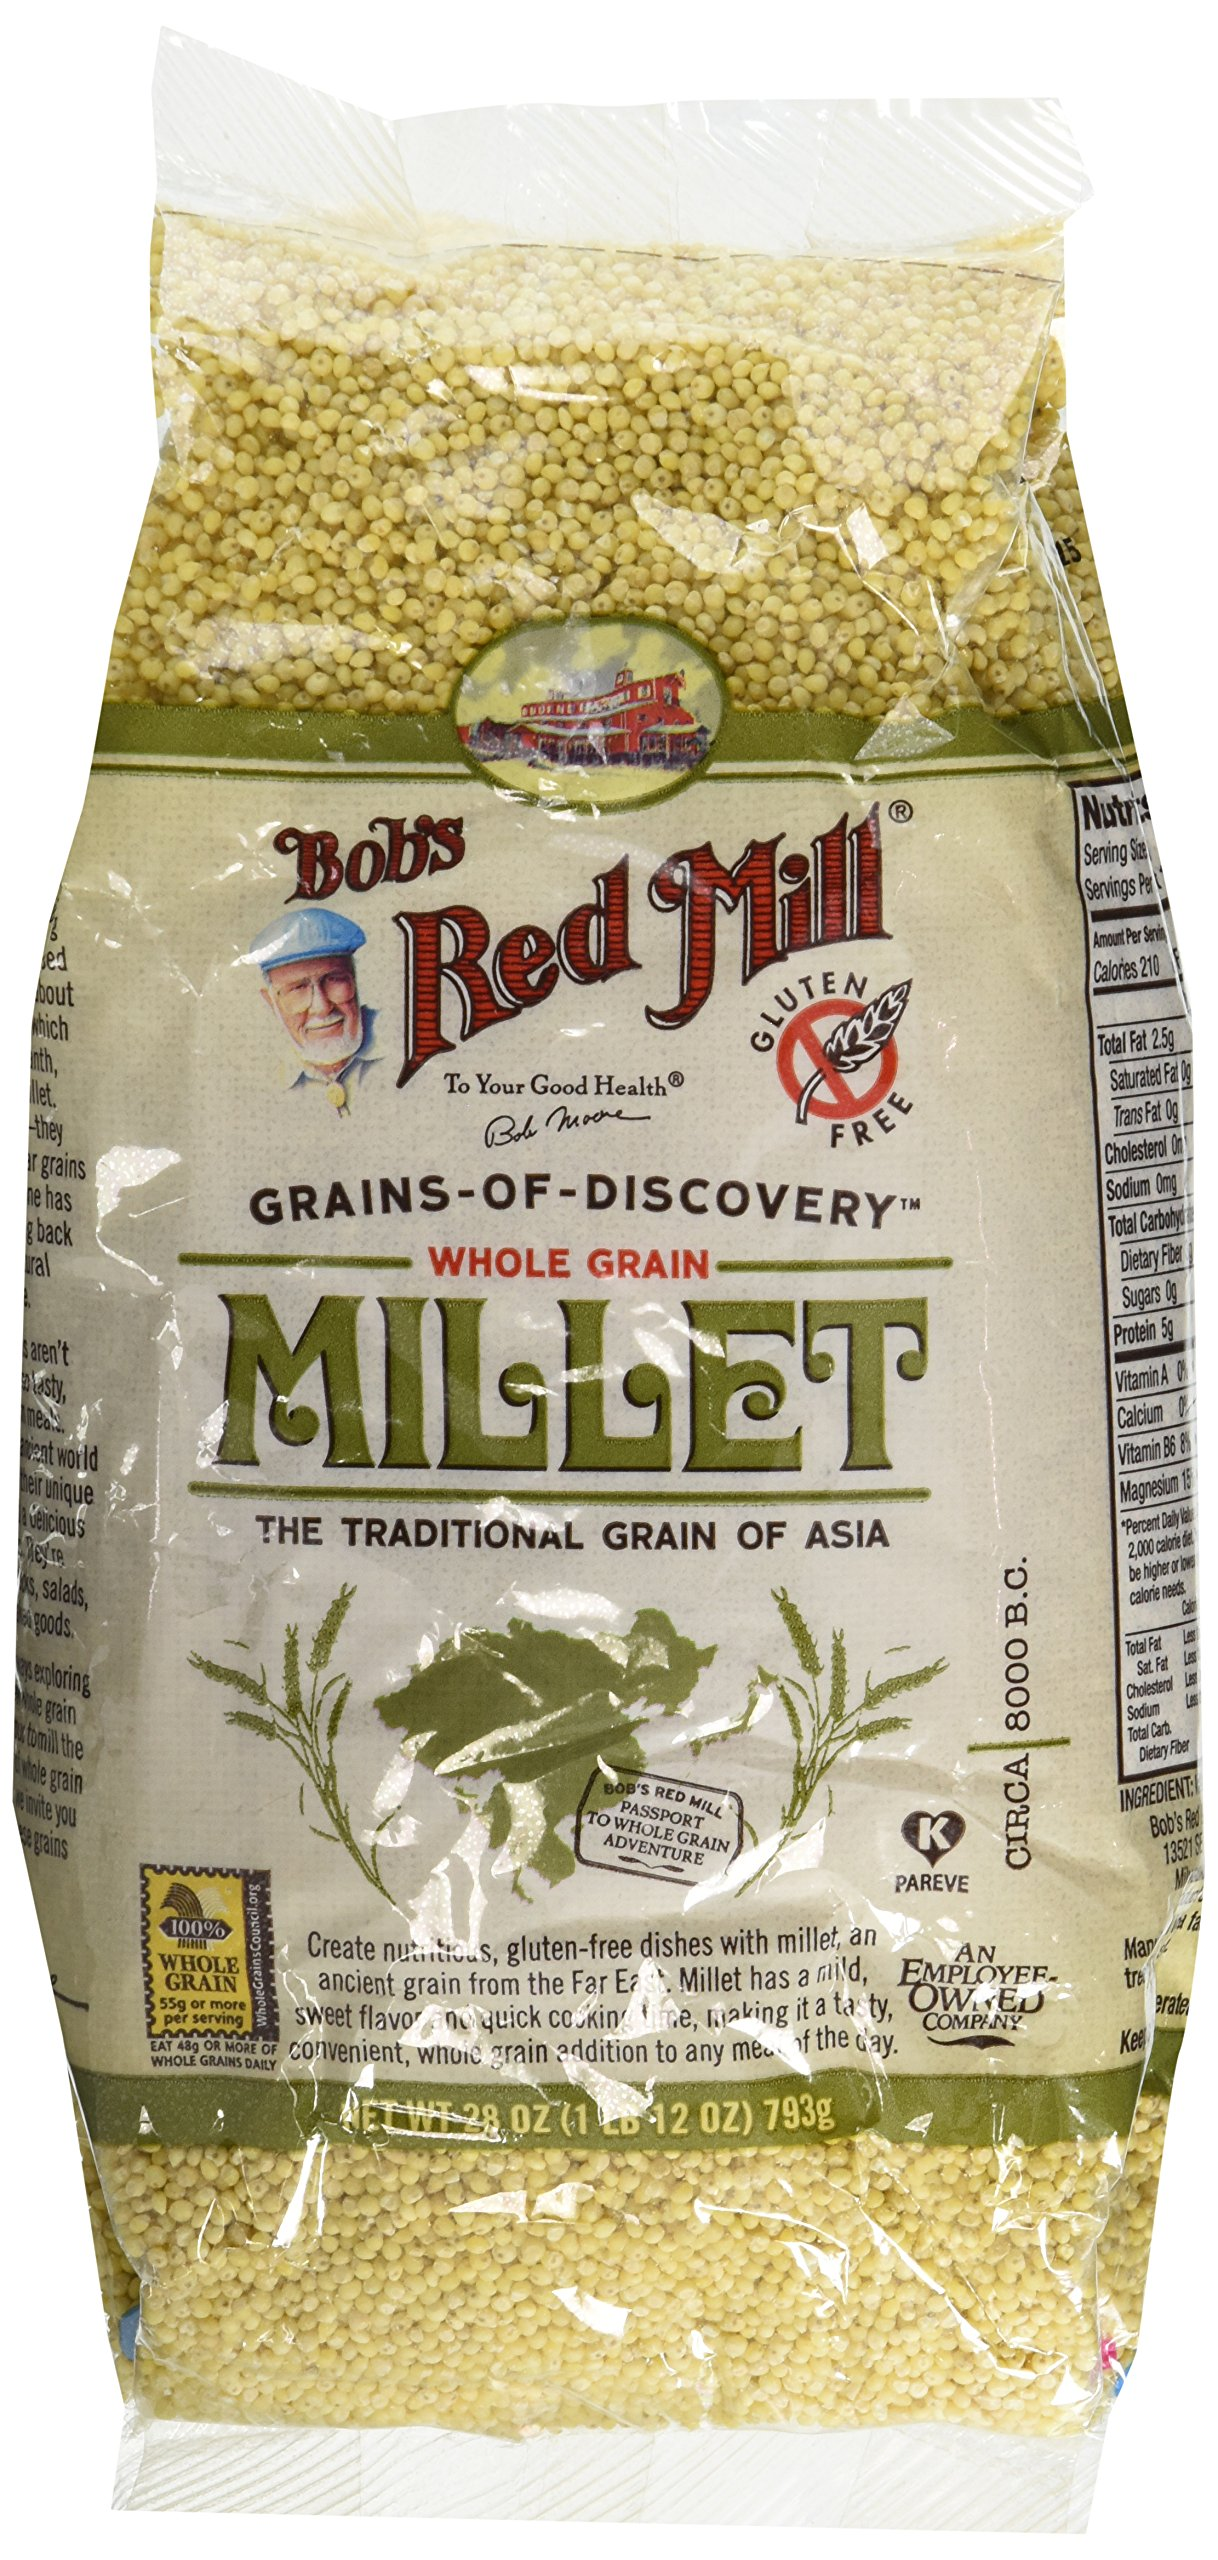 Bob's Red Mill Millet, 28oz